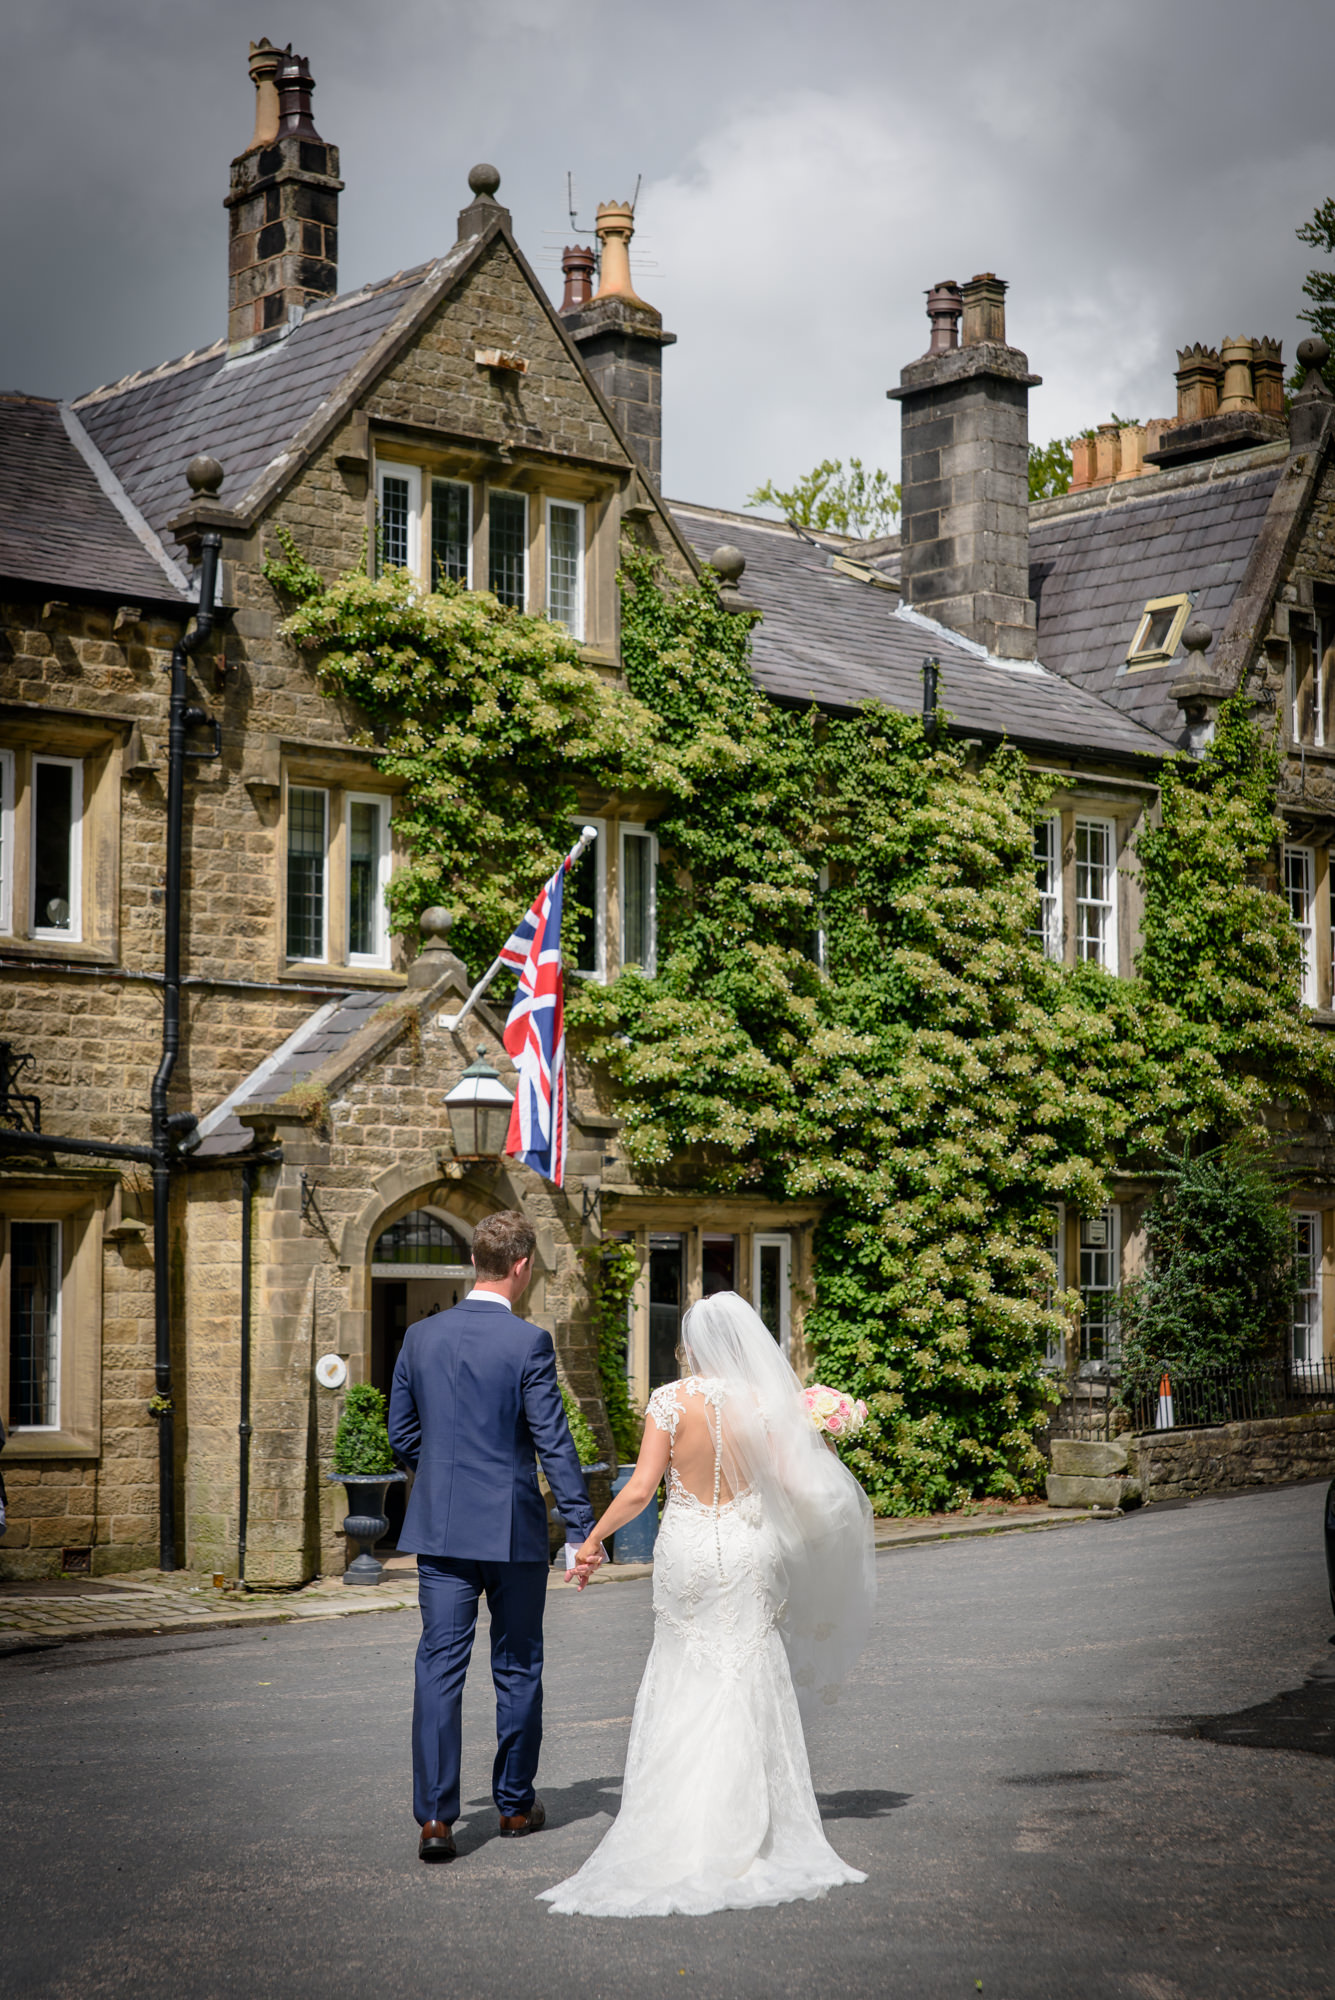 Bride and groom going to The inn at Whitewell